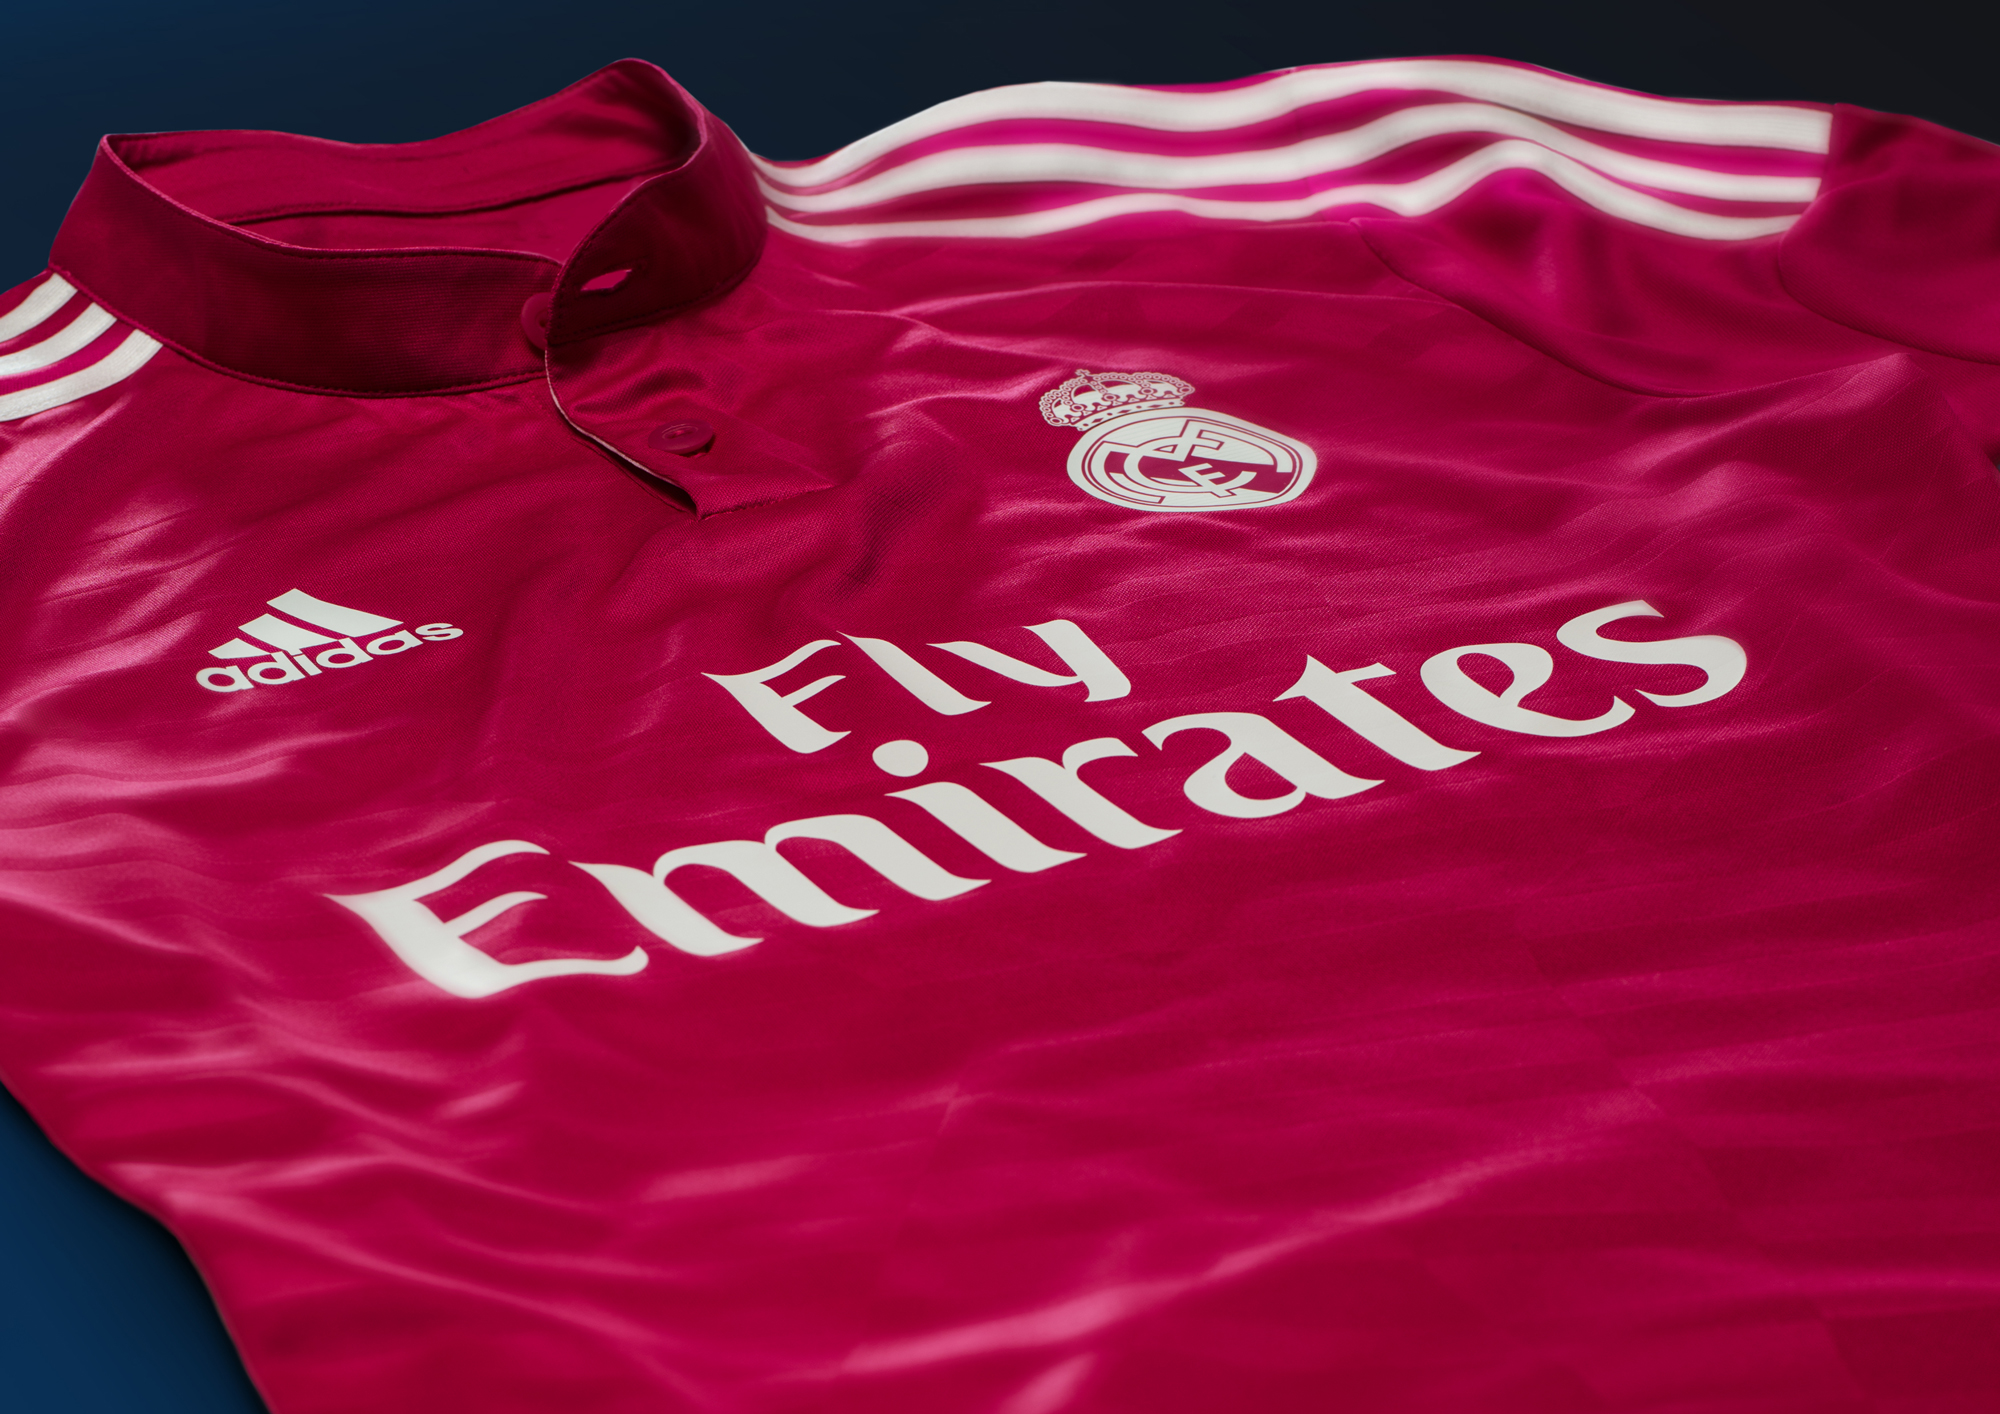 adidas-real-madrid-away-kit-laydown